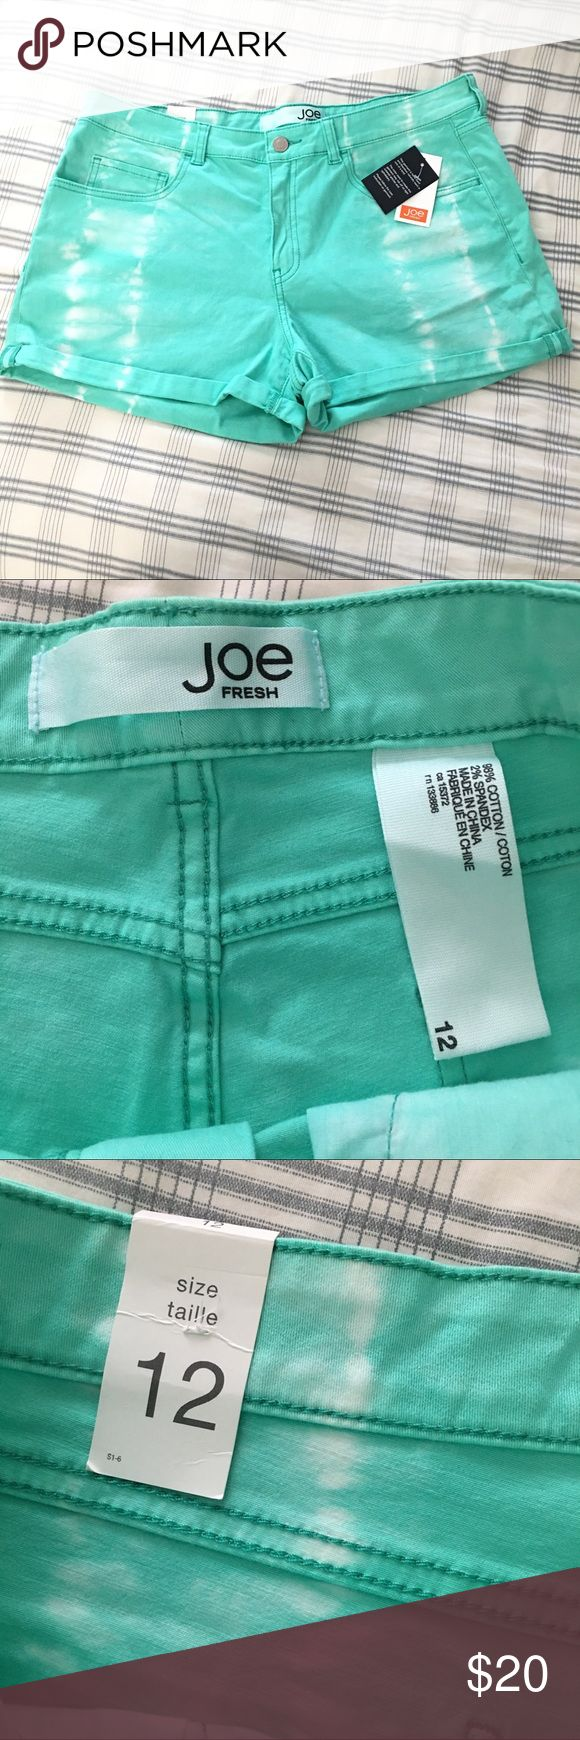 NWT JOE FRESH AQUA SHORTS, Sz 12 New, never used Joe Fresh Aqua shorts, Size 12. Pls. check all photos for details. Msg for any question. Joe Fresh Shorts